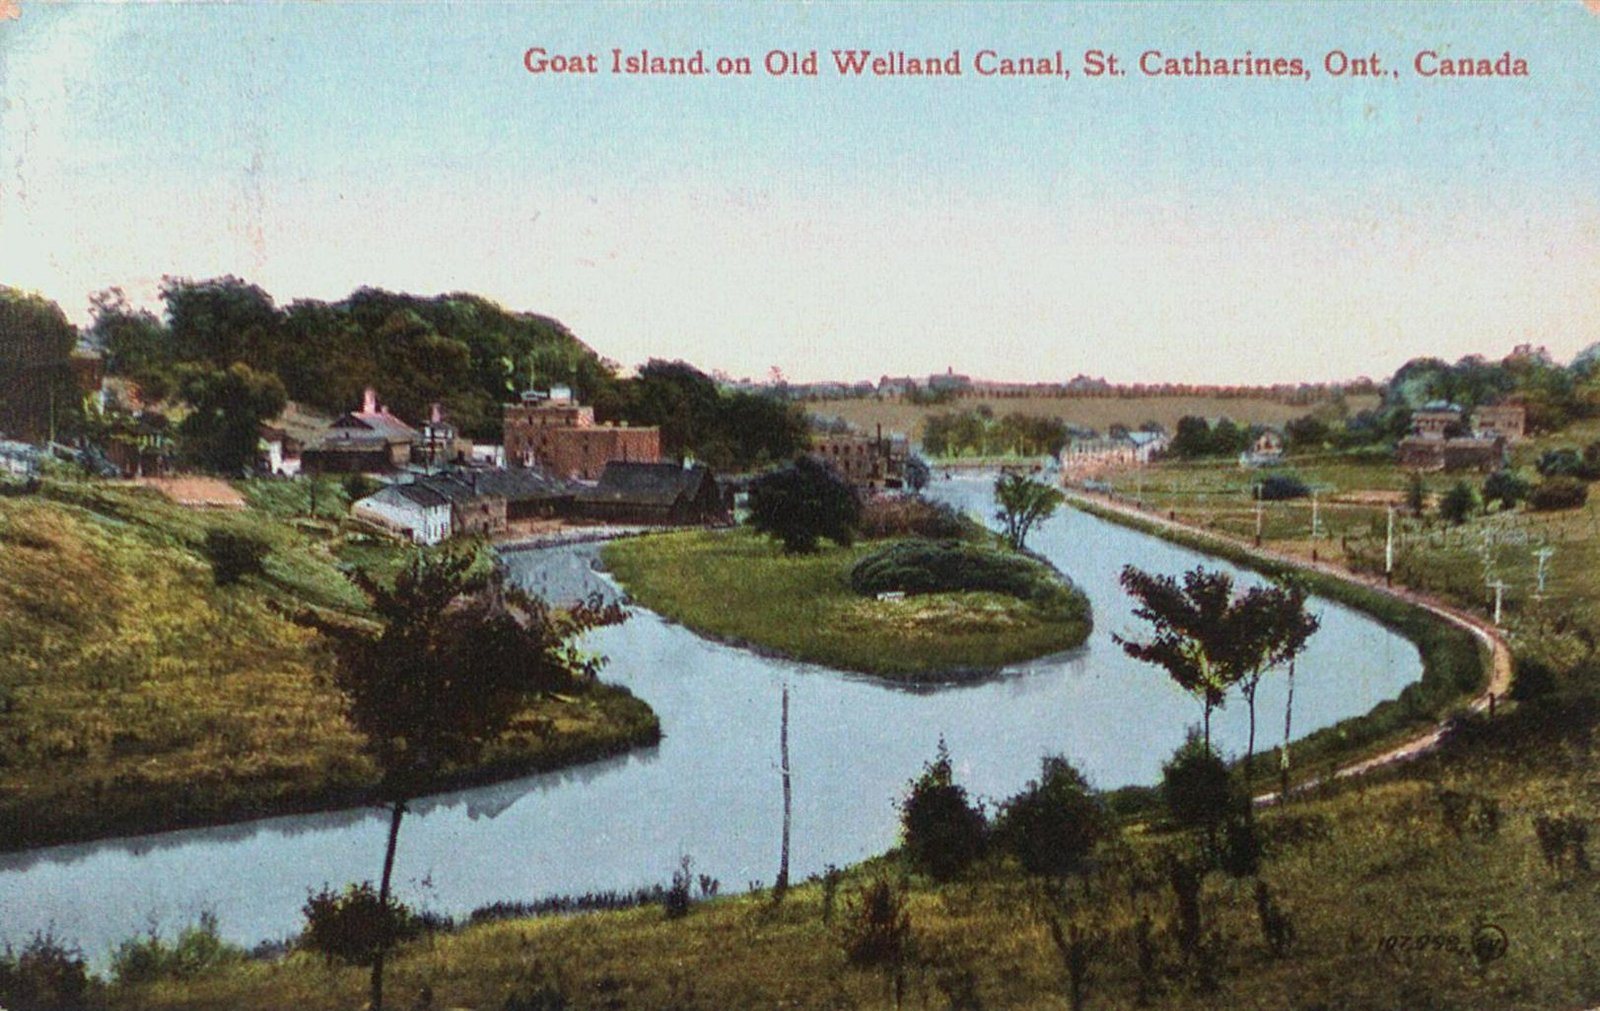 Goat Island on the Old Welland Canal